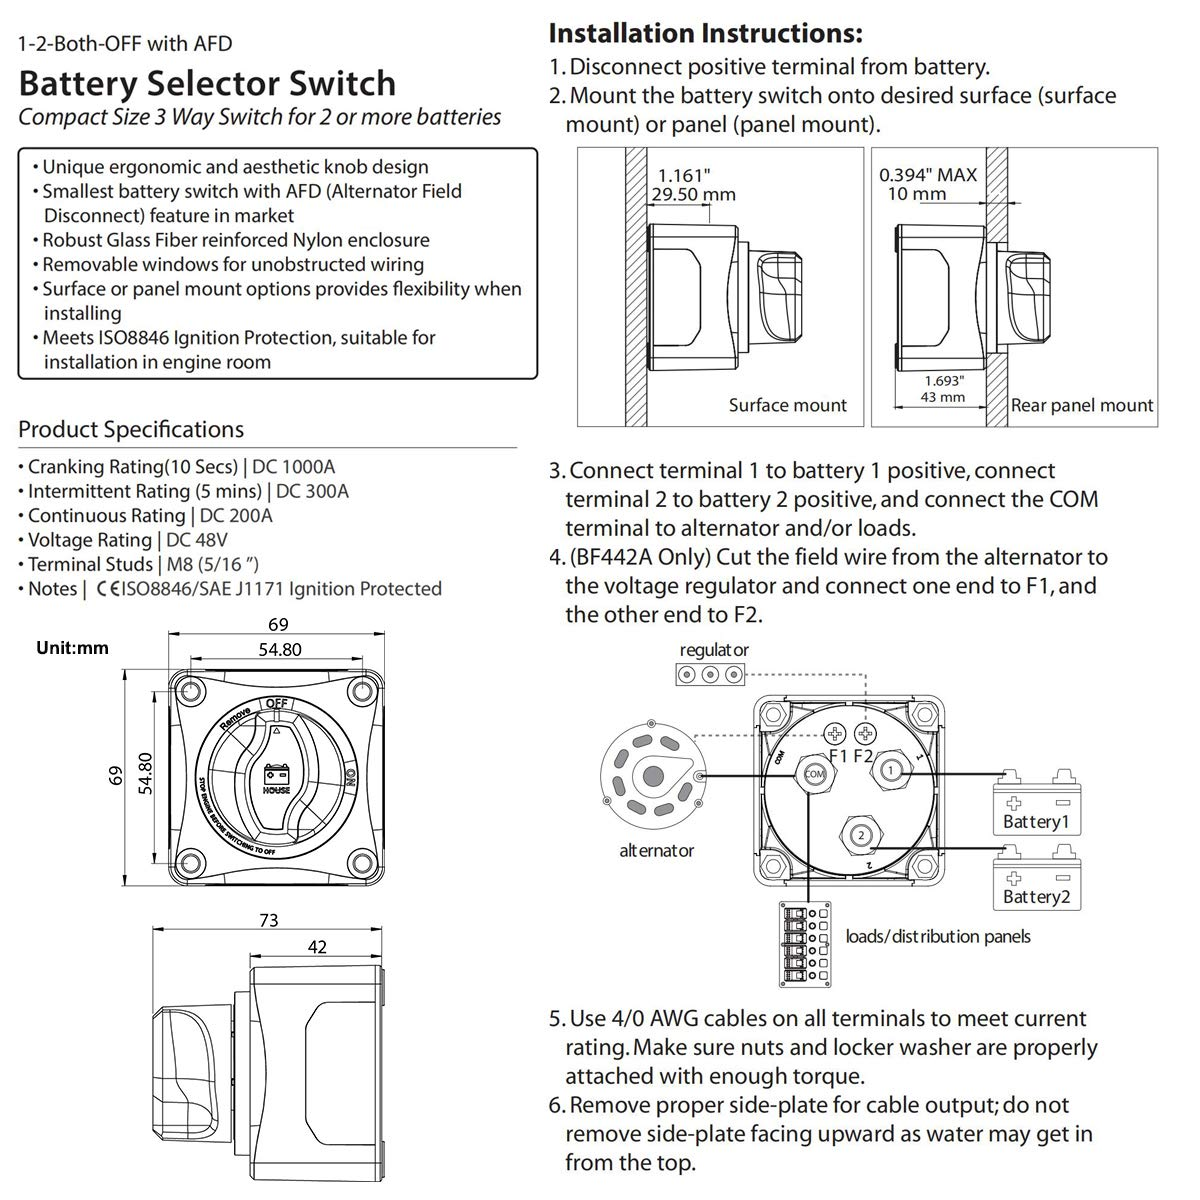 Zookoto Battery Main Switch1 2 Both Off 3 Way Switch End Of Line Selector 4 Position Dual Afalternator Field Disconnect